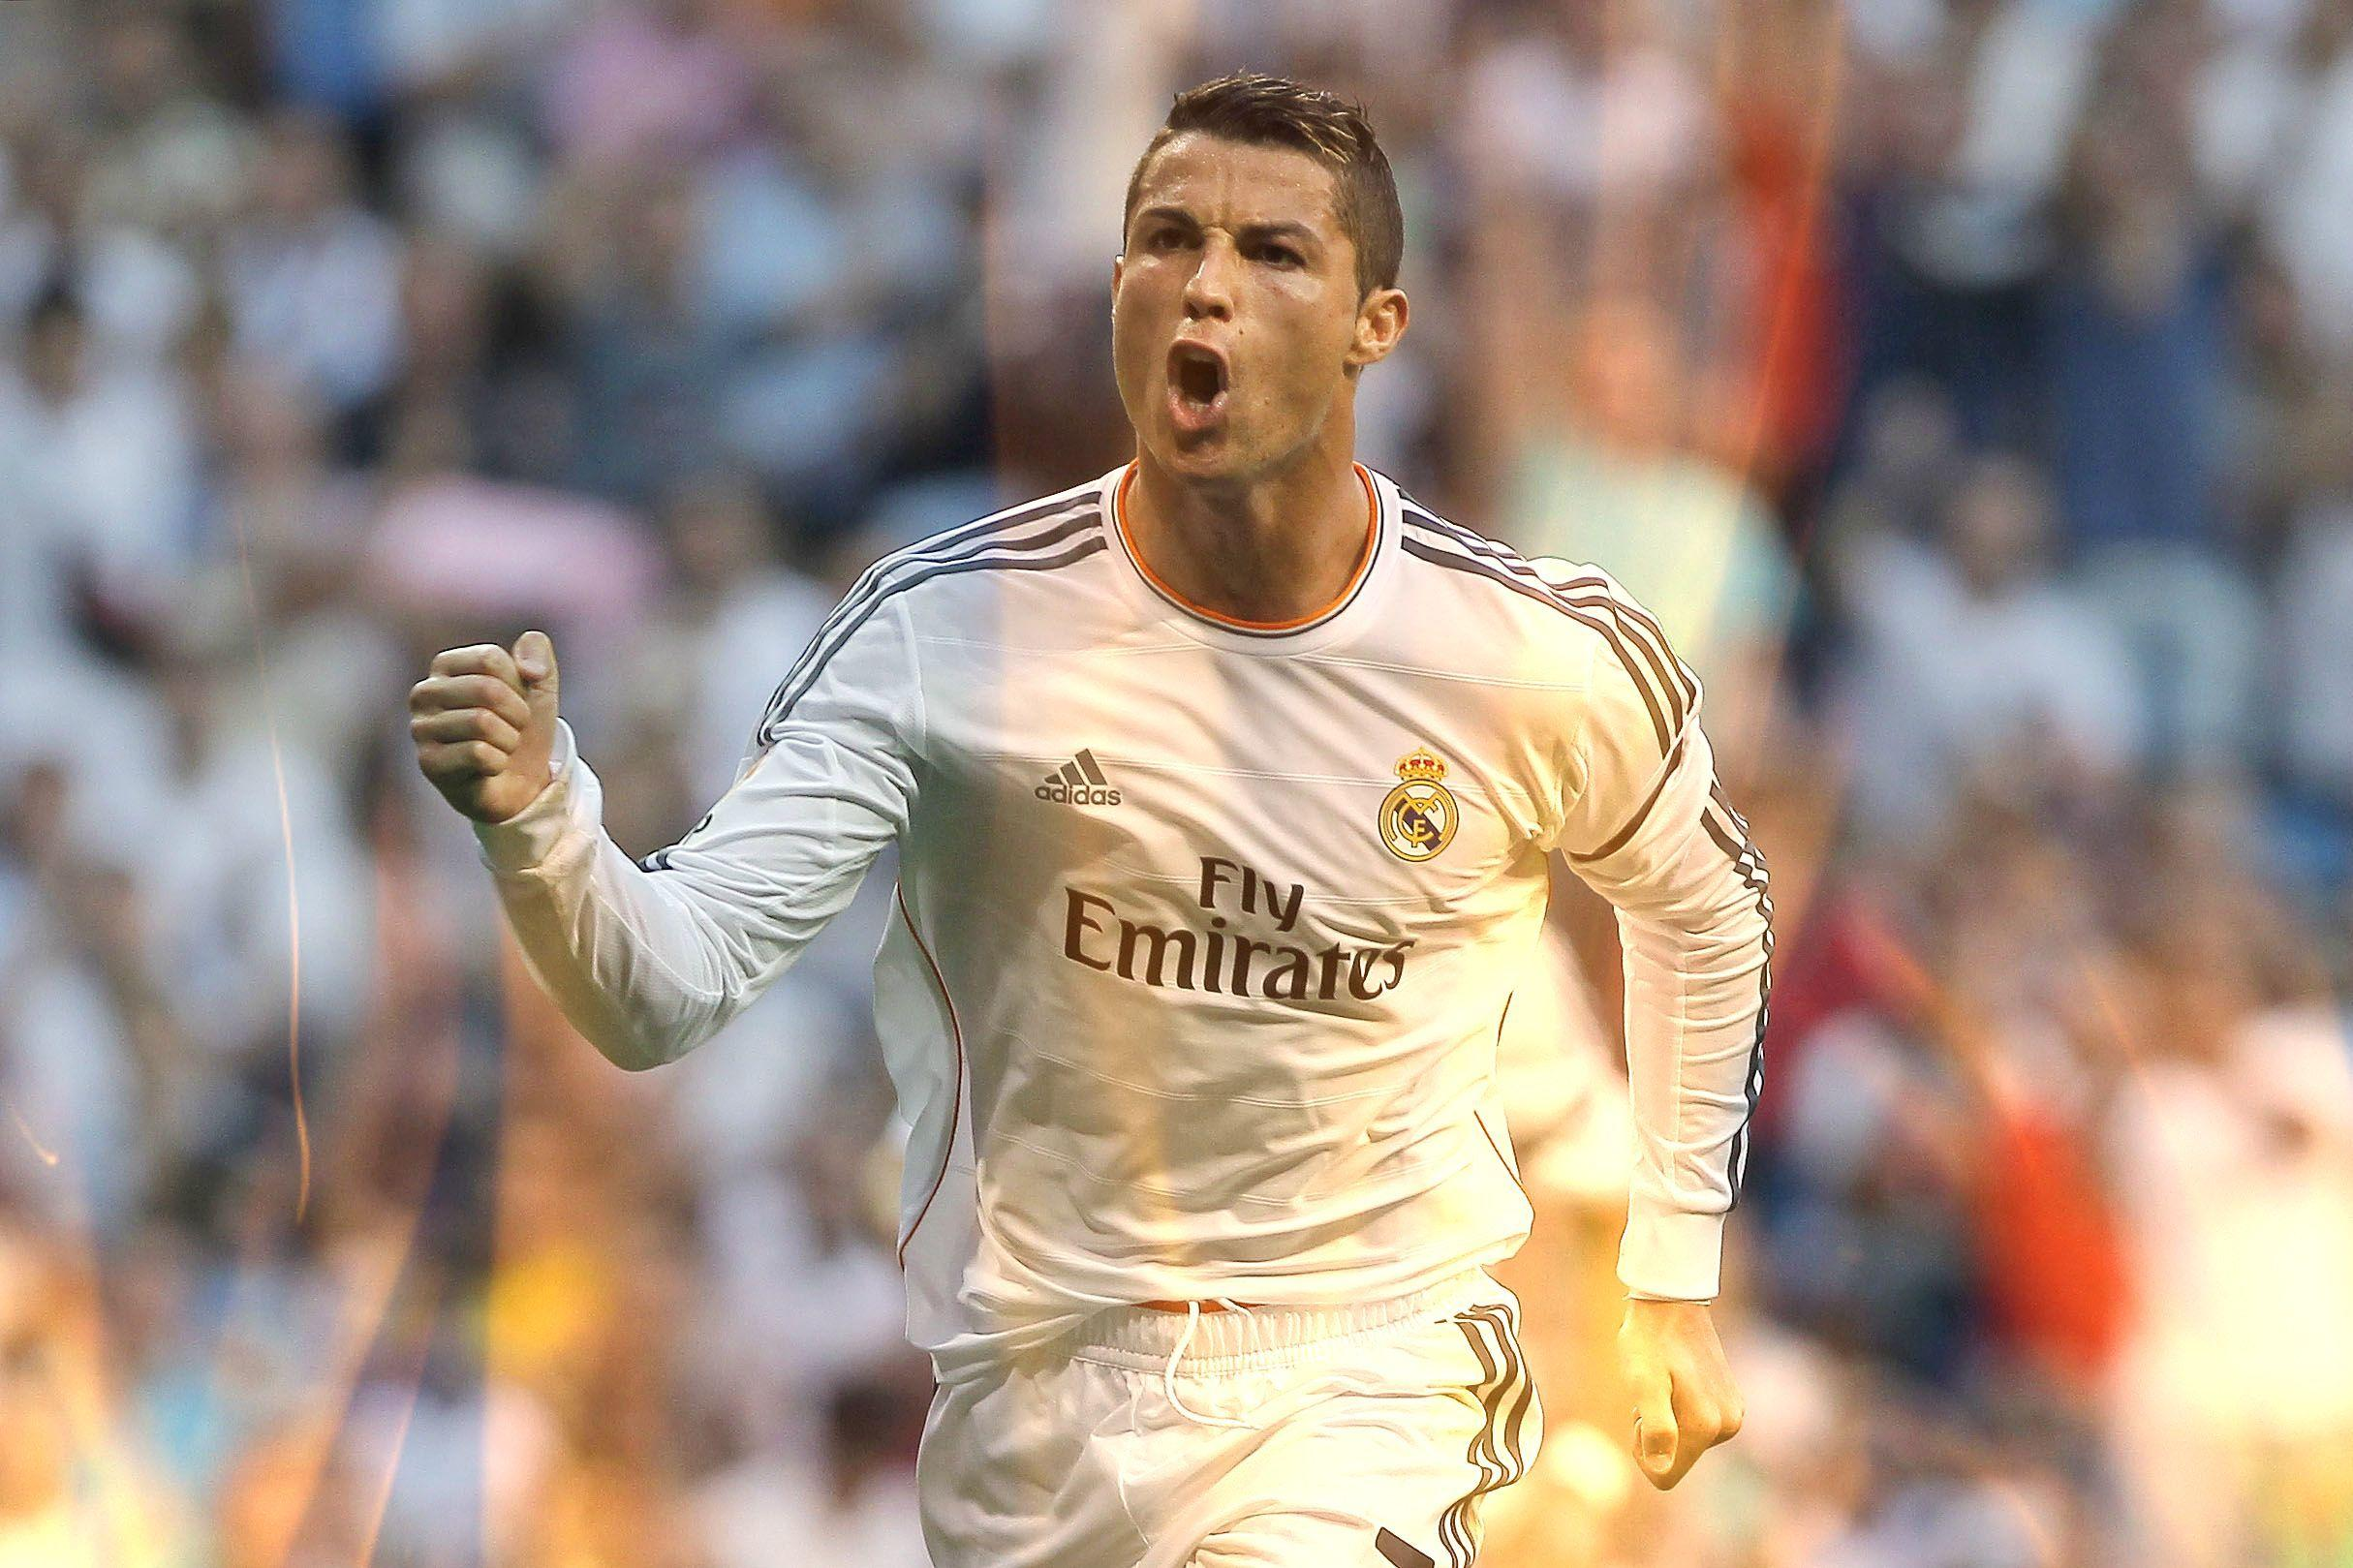 Cr7 wallpapers 2016 wallpaper cave - Hd photos of cr7 ...